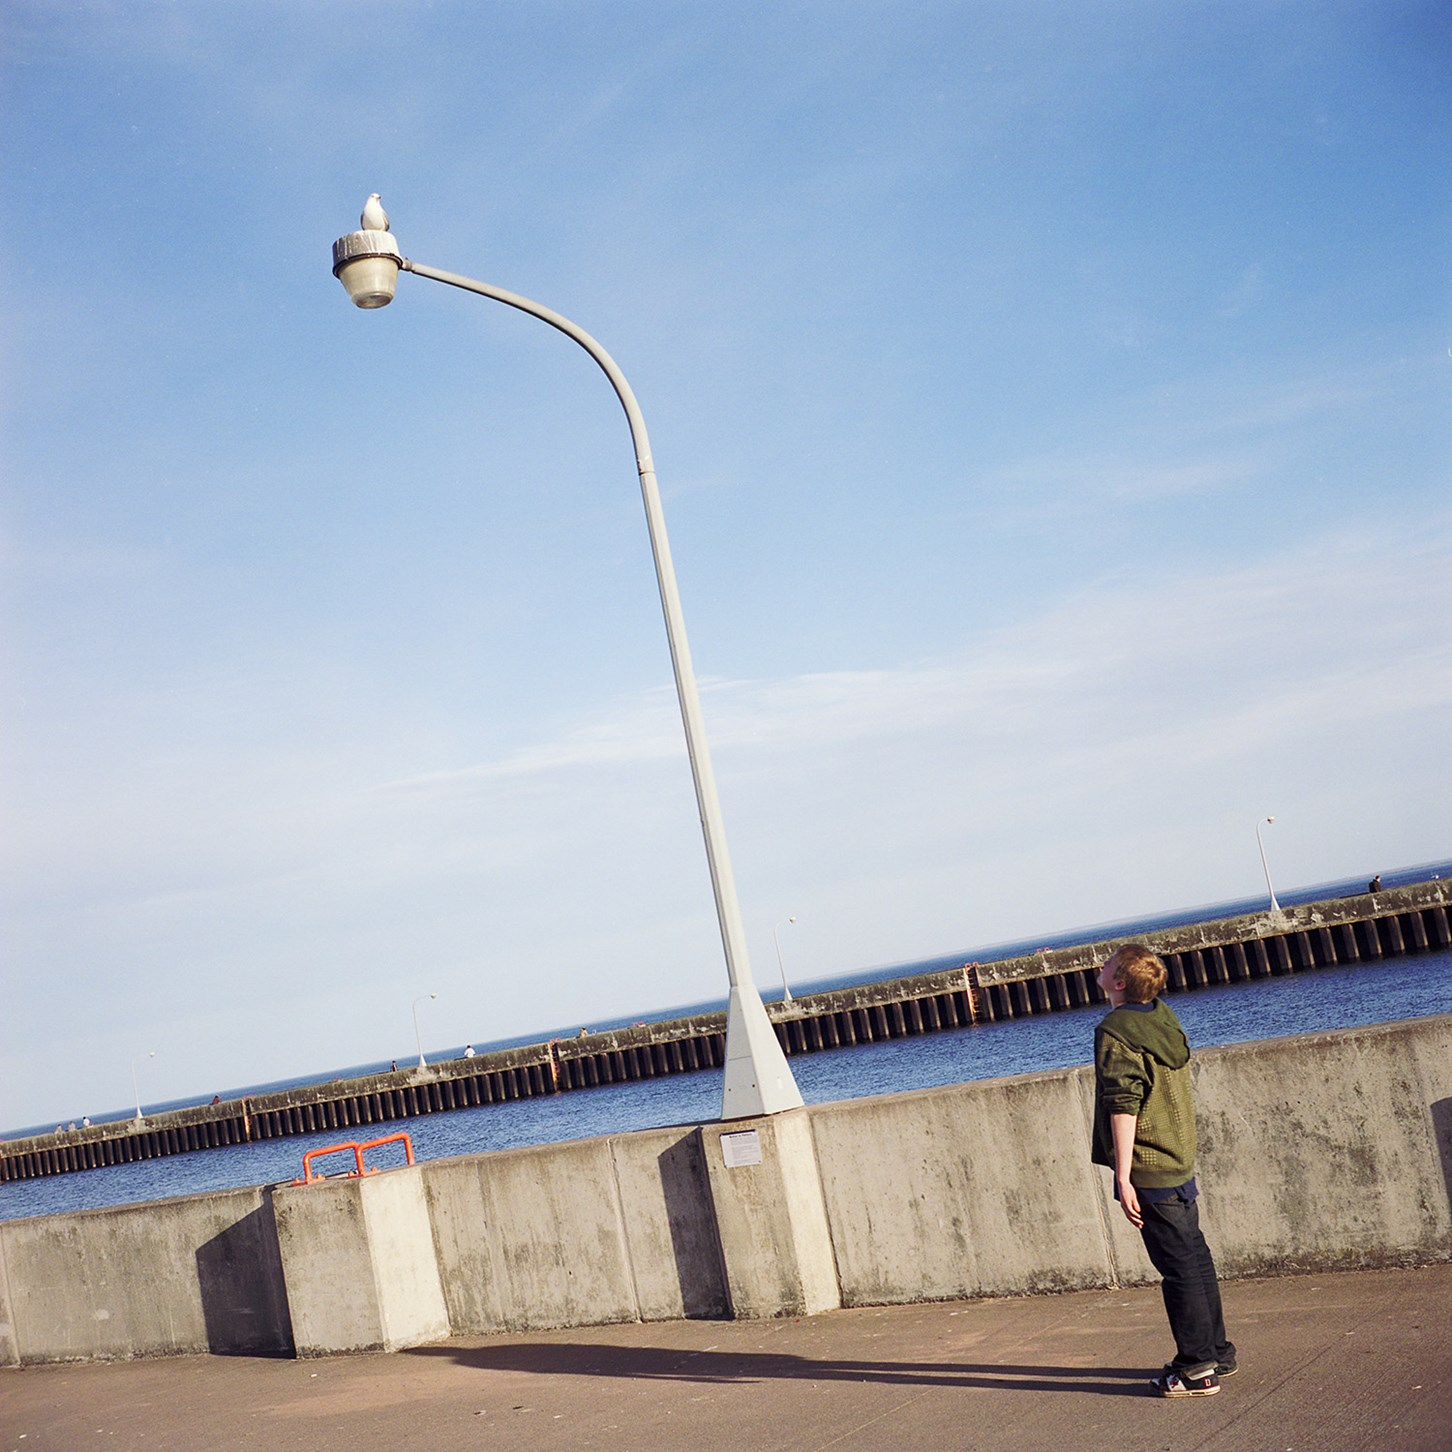 Boy Watching A Seagull, Duluth, Minnesota, March 2010